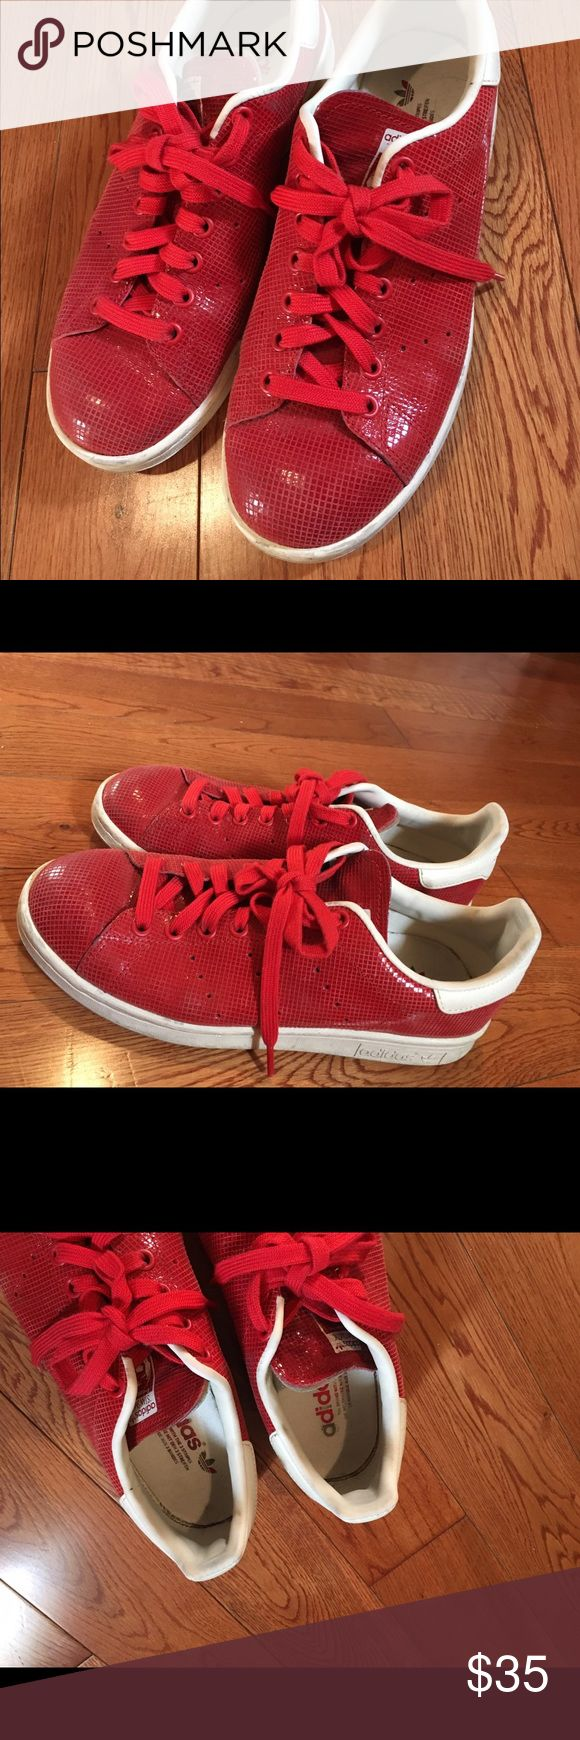 Adidas Stan Smith Almost like a snake print classic stan smith. Used but still in good condition. Adidas Shoes Sneakers